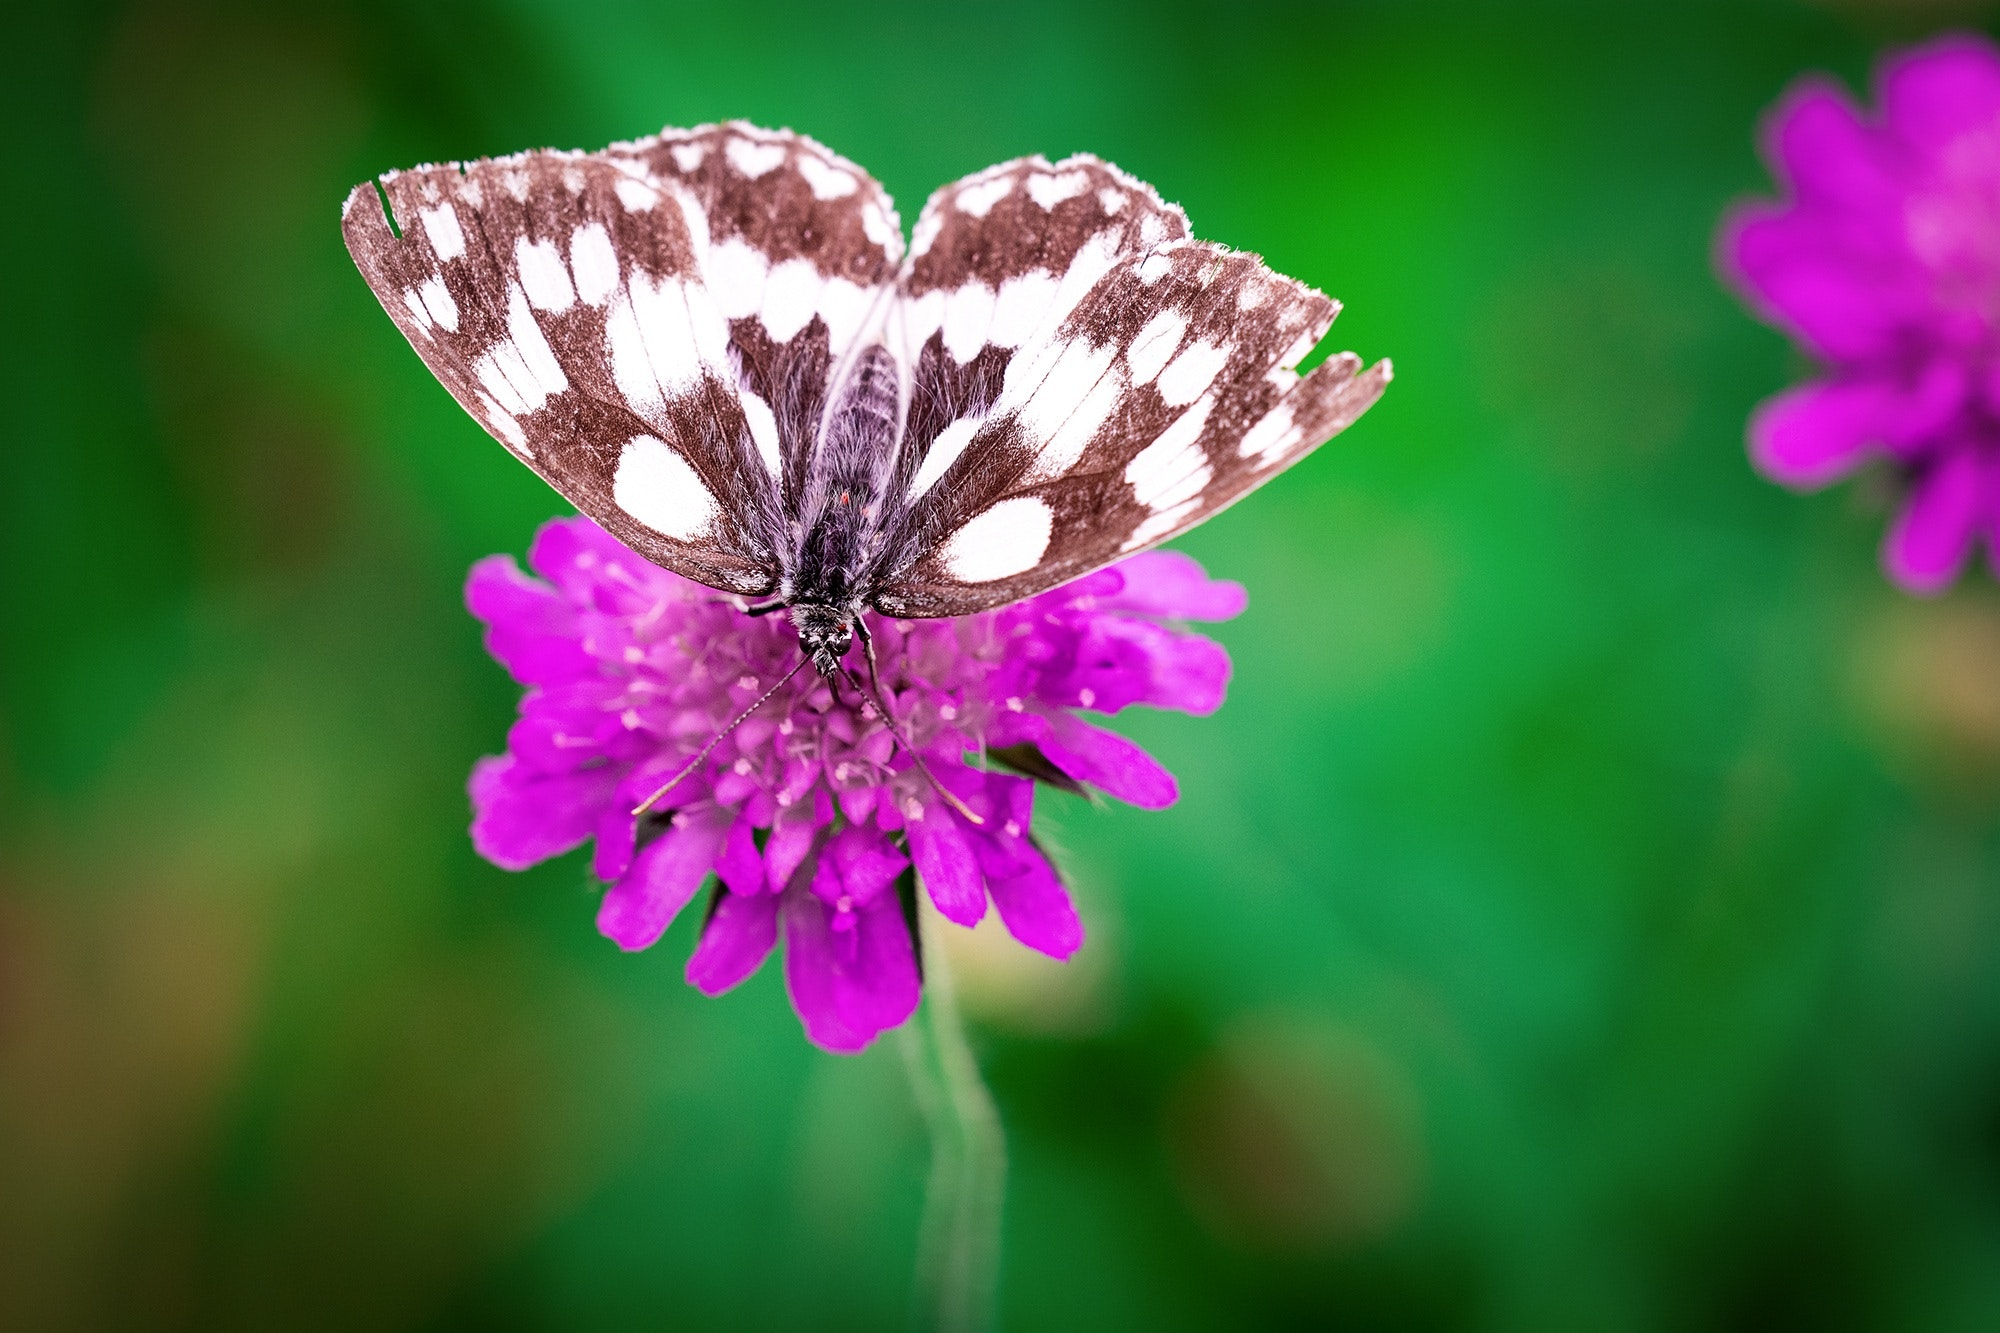 White Brown Butterfly Perched On Pink Flower 183 Free Stock